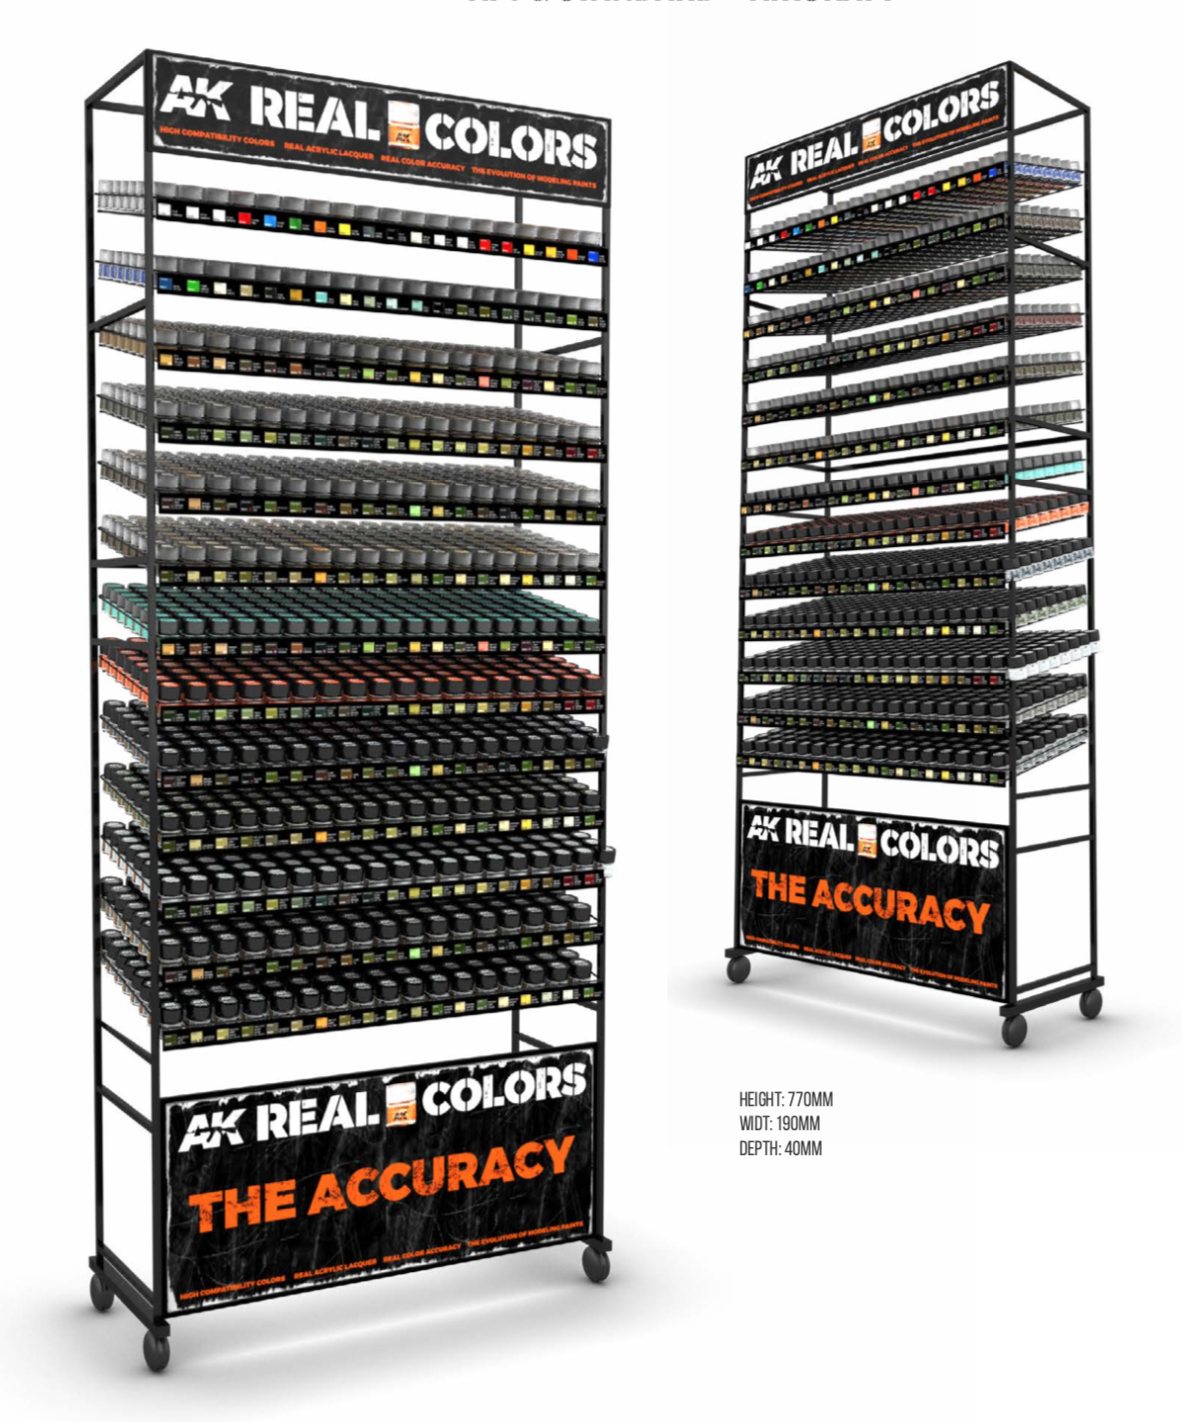 AK Interactive Real Colors Full Rack (AFV colors + AIR colors)  (247 Colors x 3 units)